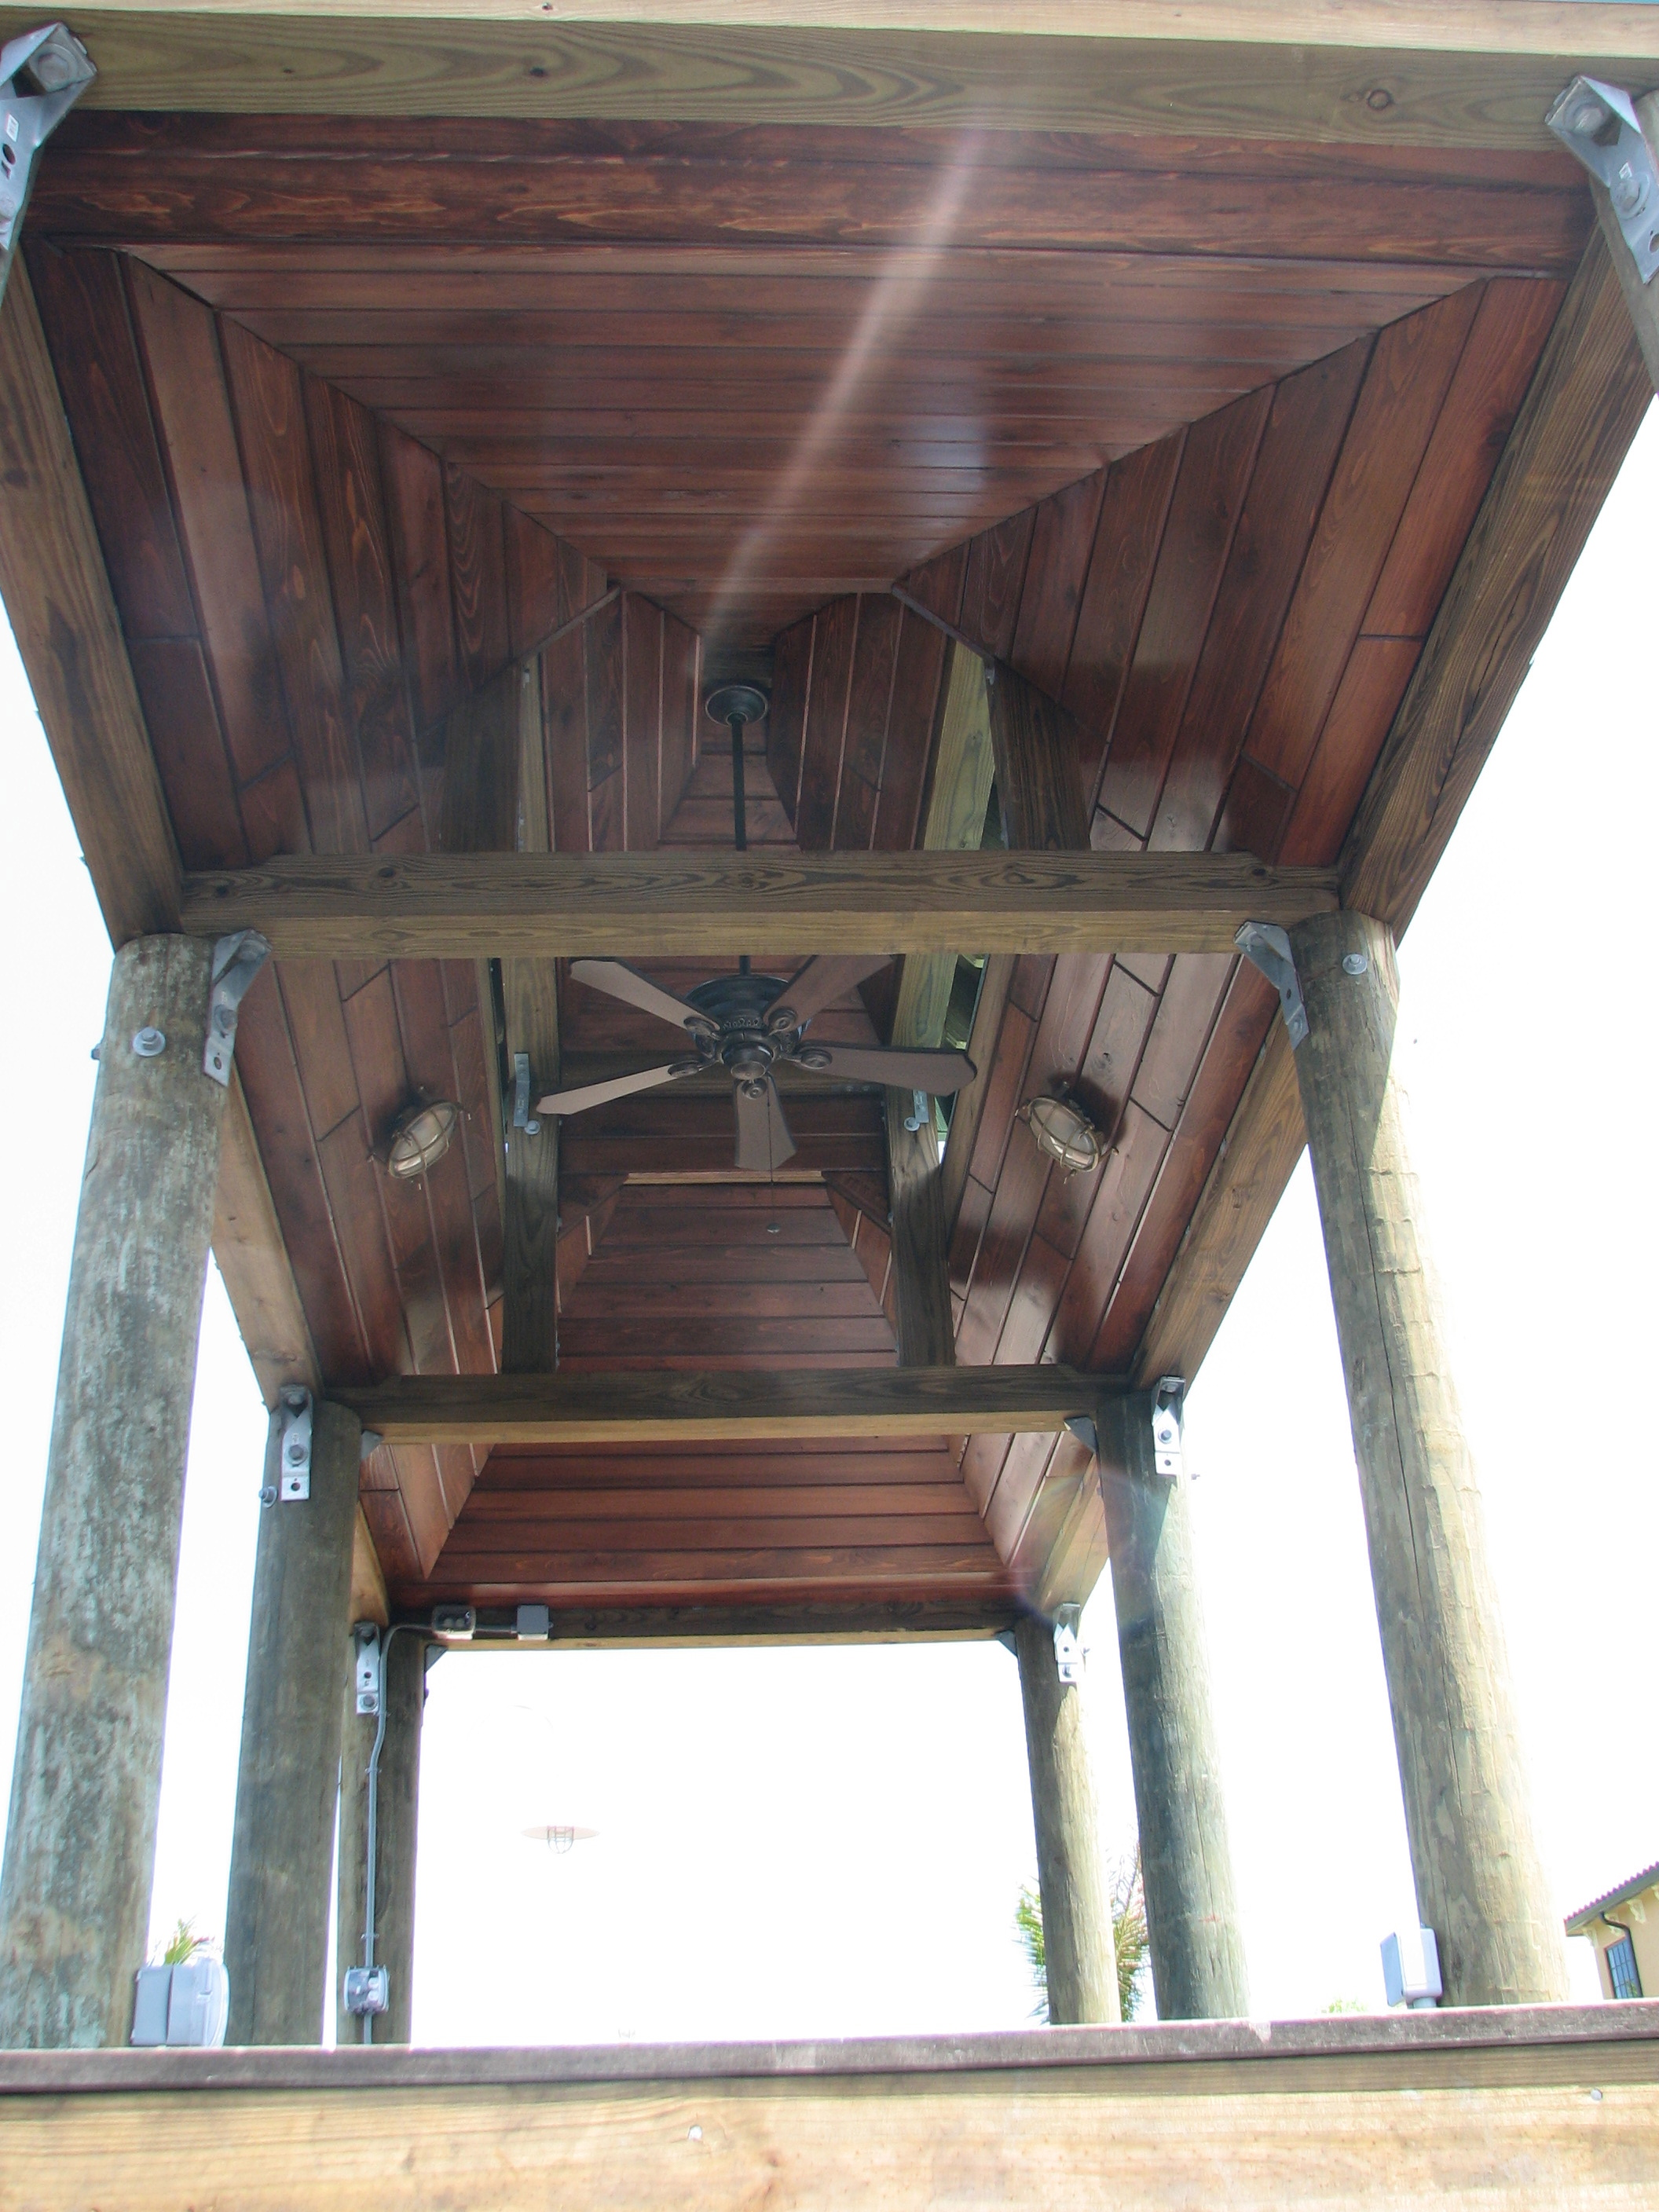 Pecky Cypress Boat House Stained Tongue and Groove Roof .jpg